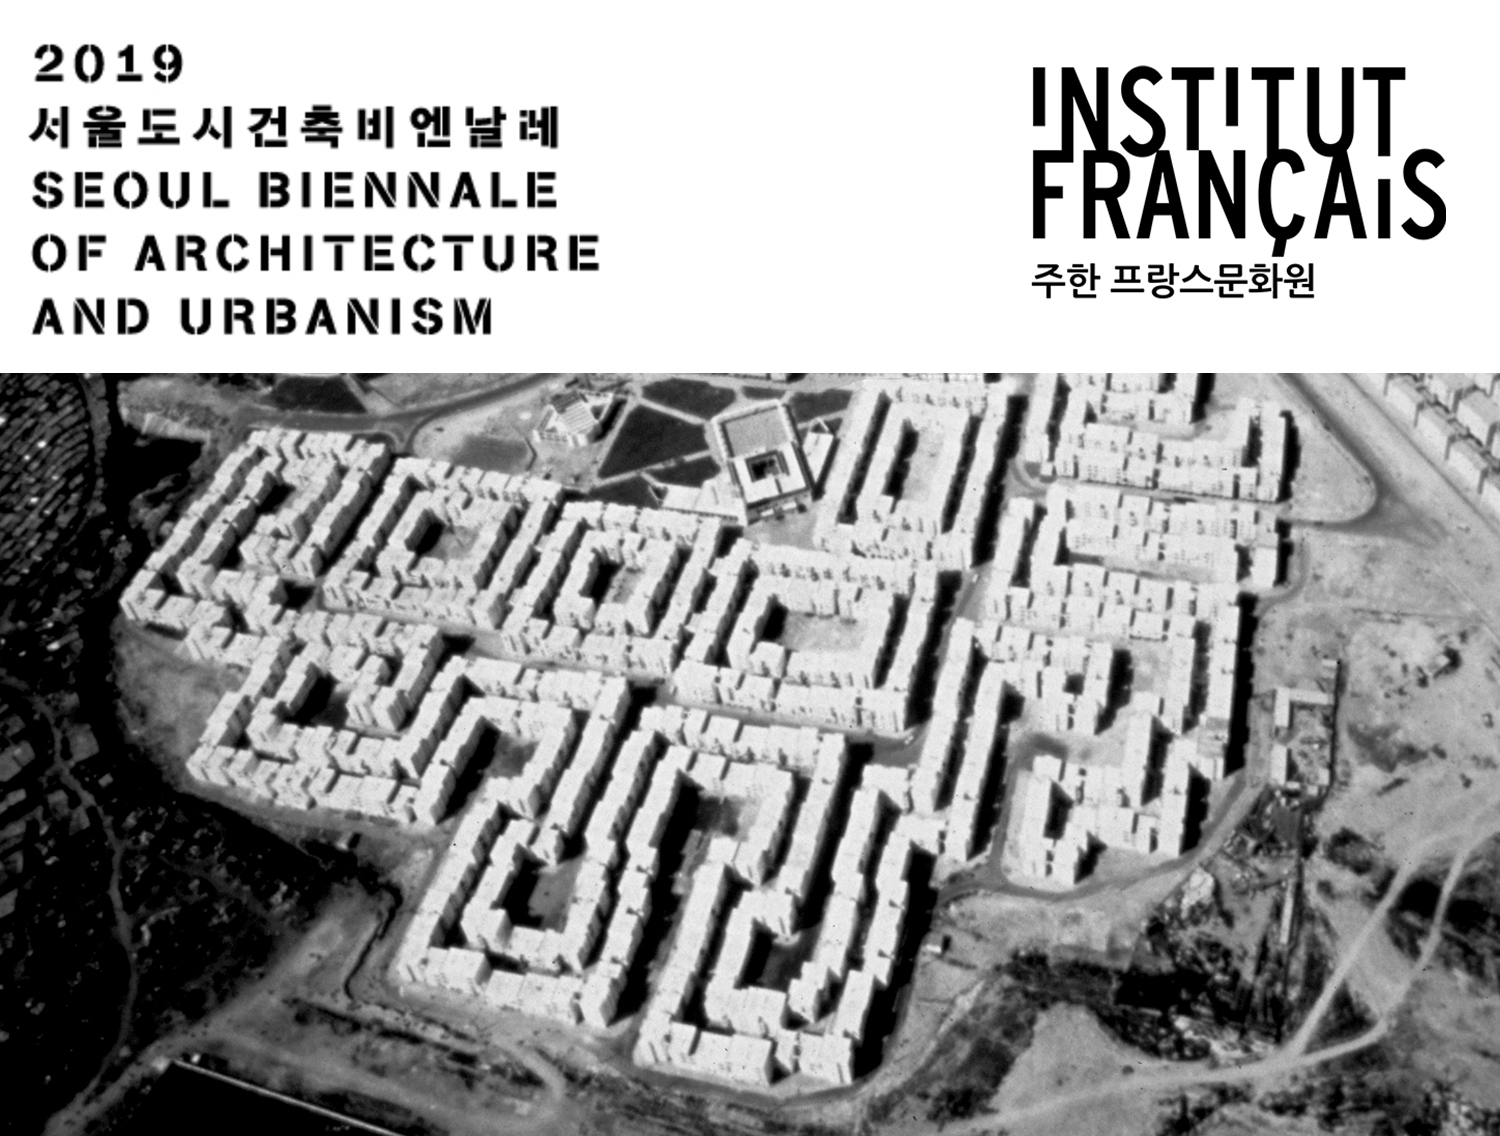 SYMP - SEPT. 5, 2019 | O+C will head-up the French Symposium at the Seoul Biennale, in partnership with the Institut Français de Séoul — event begins at 5 pm in the Seoul Architectural Hall